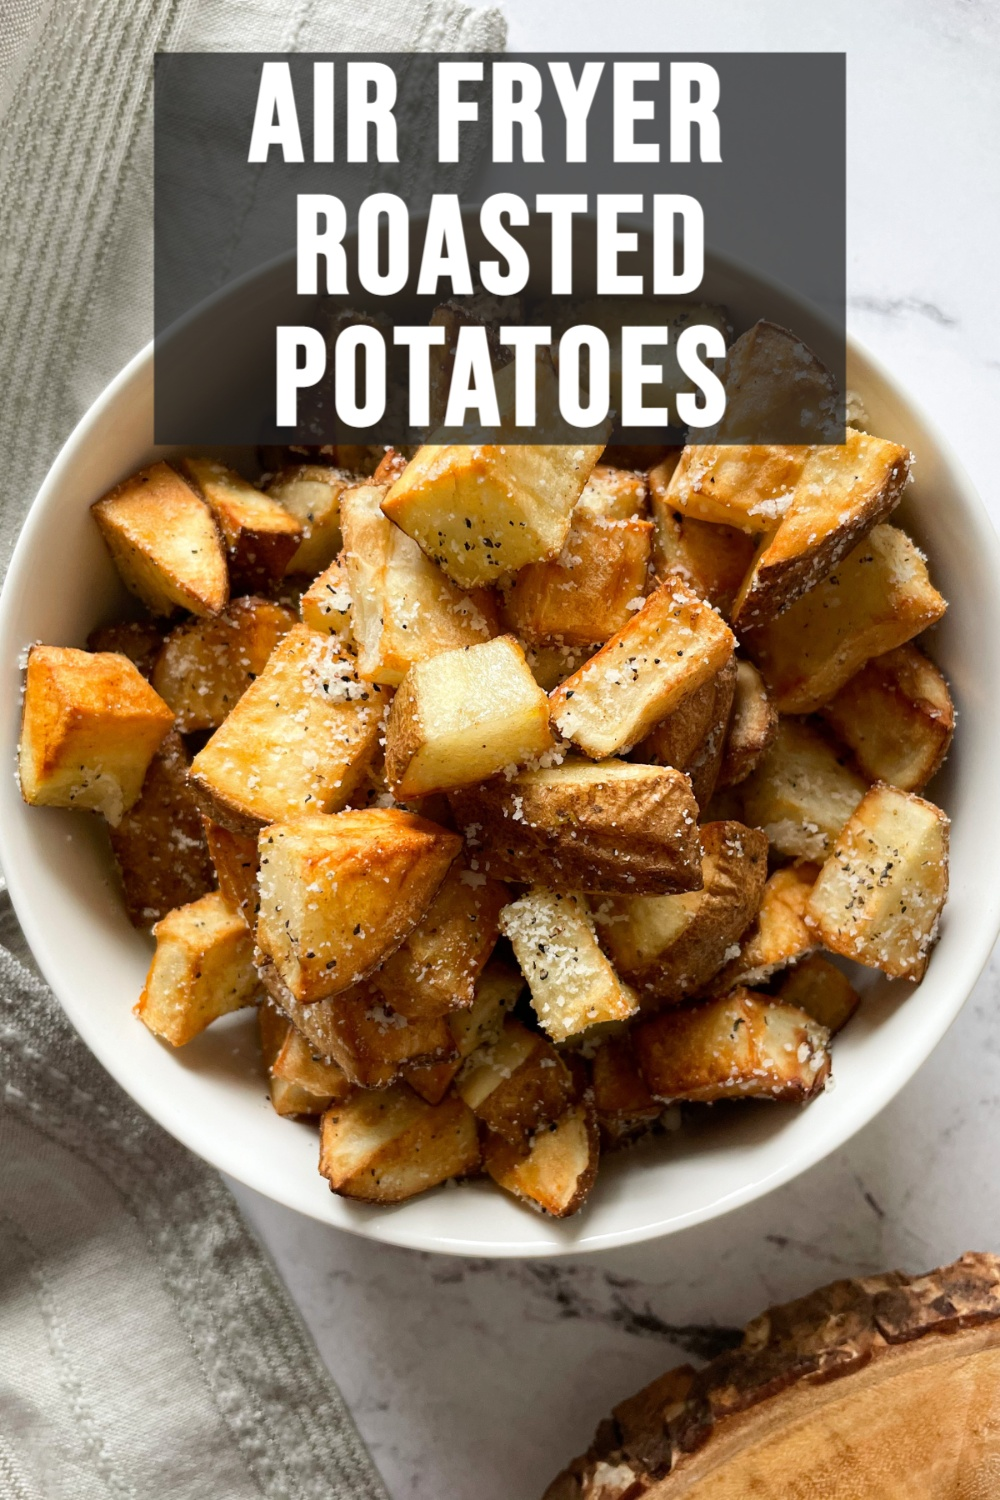 cooked potatoes in a white bowl with text overlay